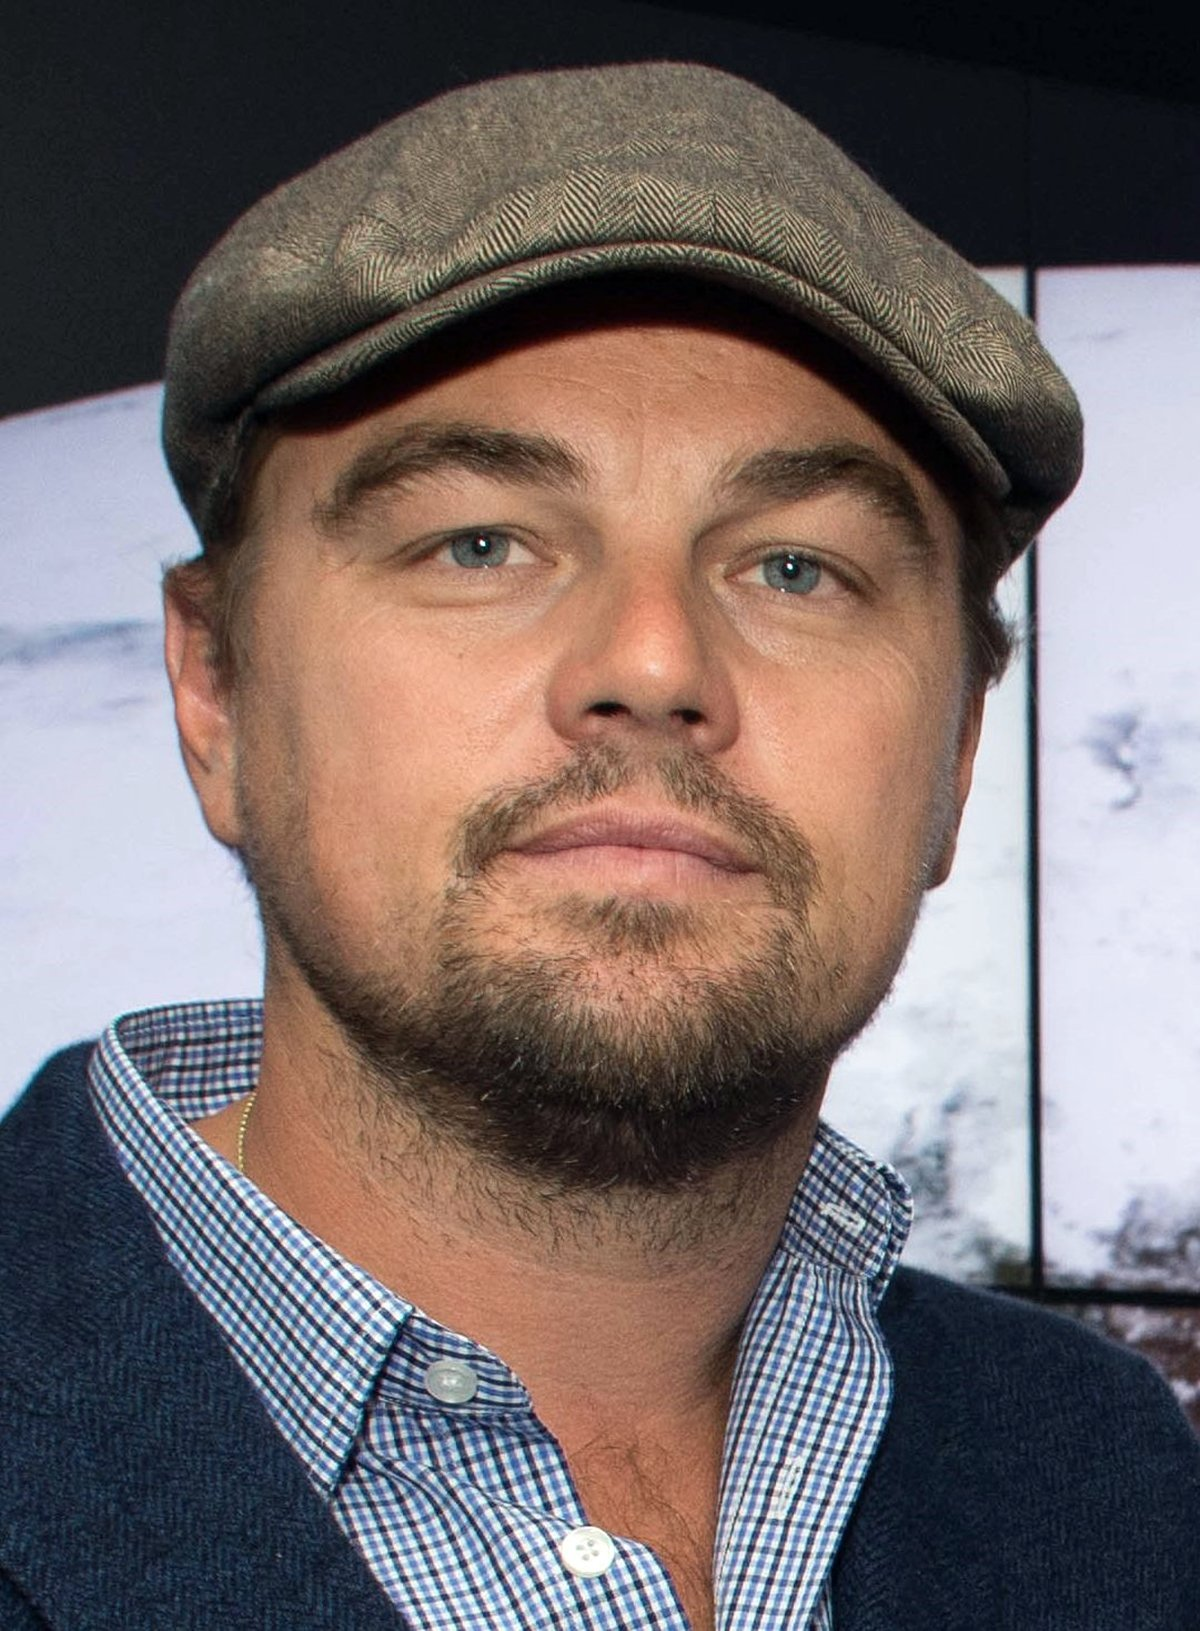 7 13 14 Things You May Not Have Realised About Leonardo DiCaprio